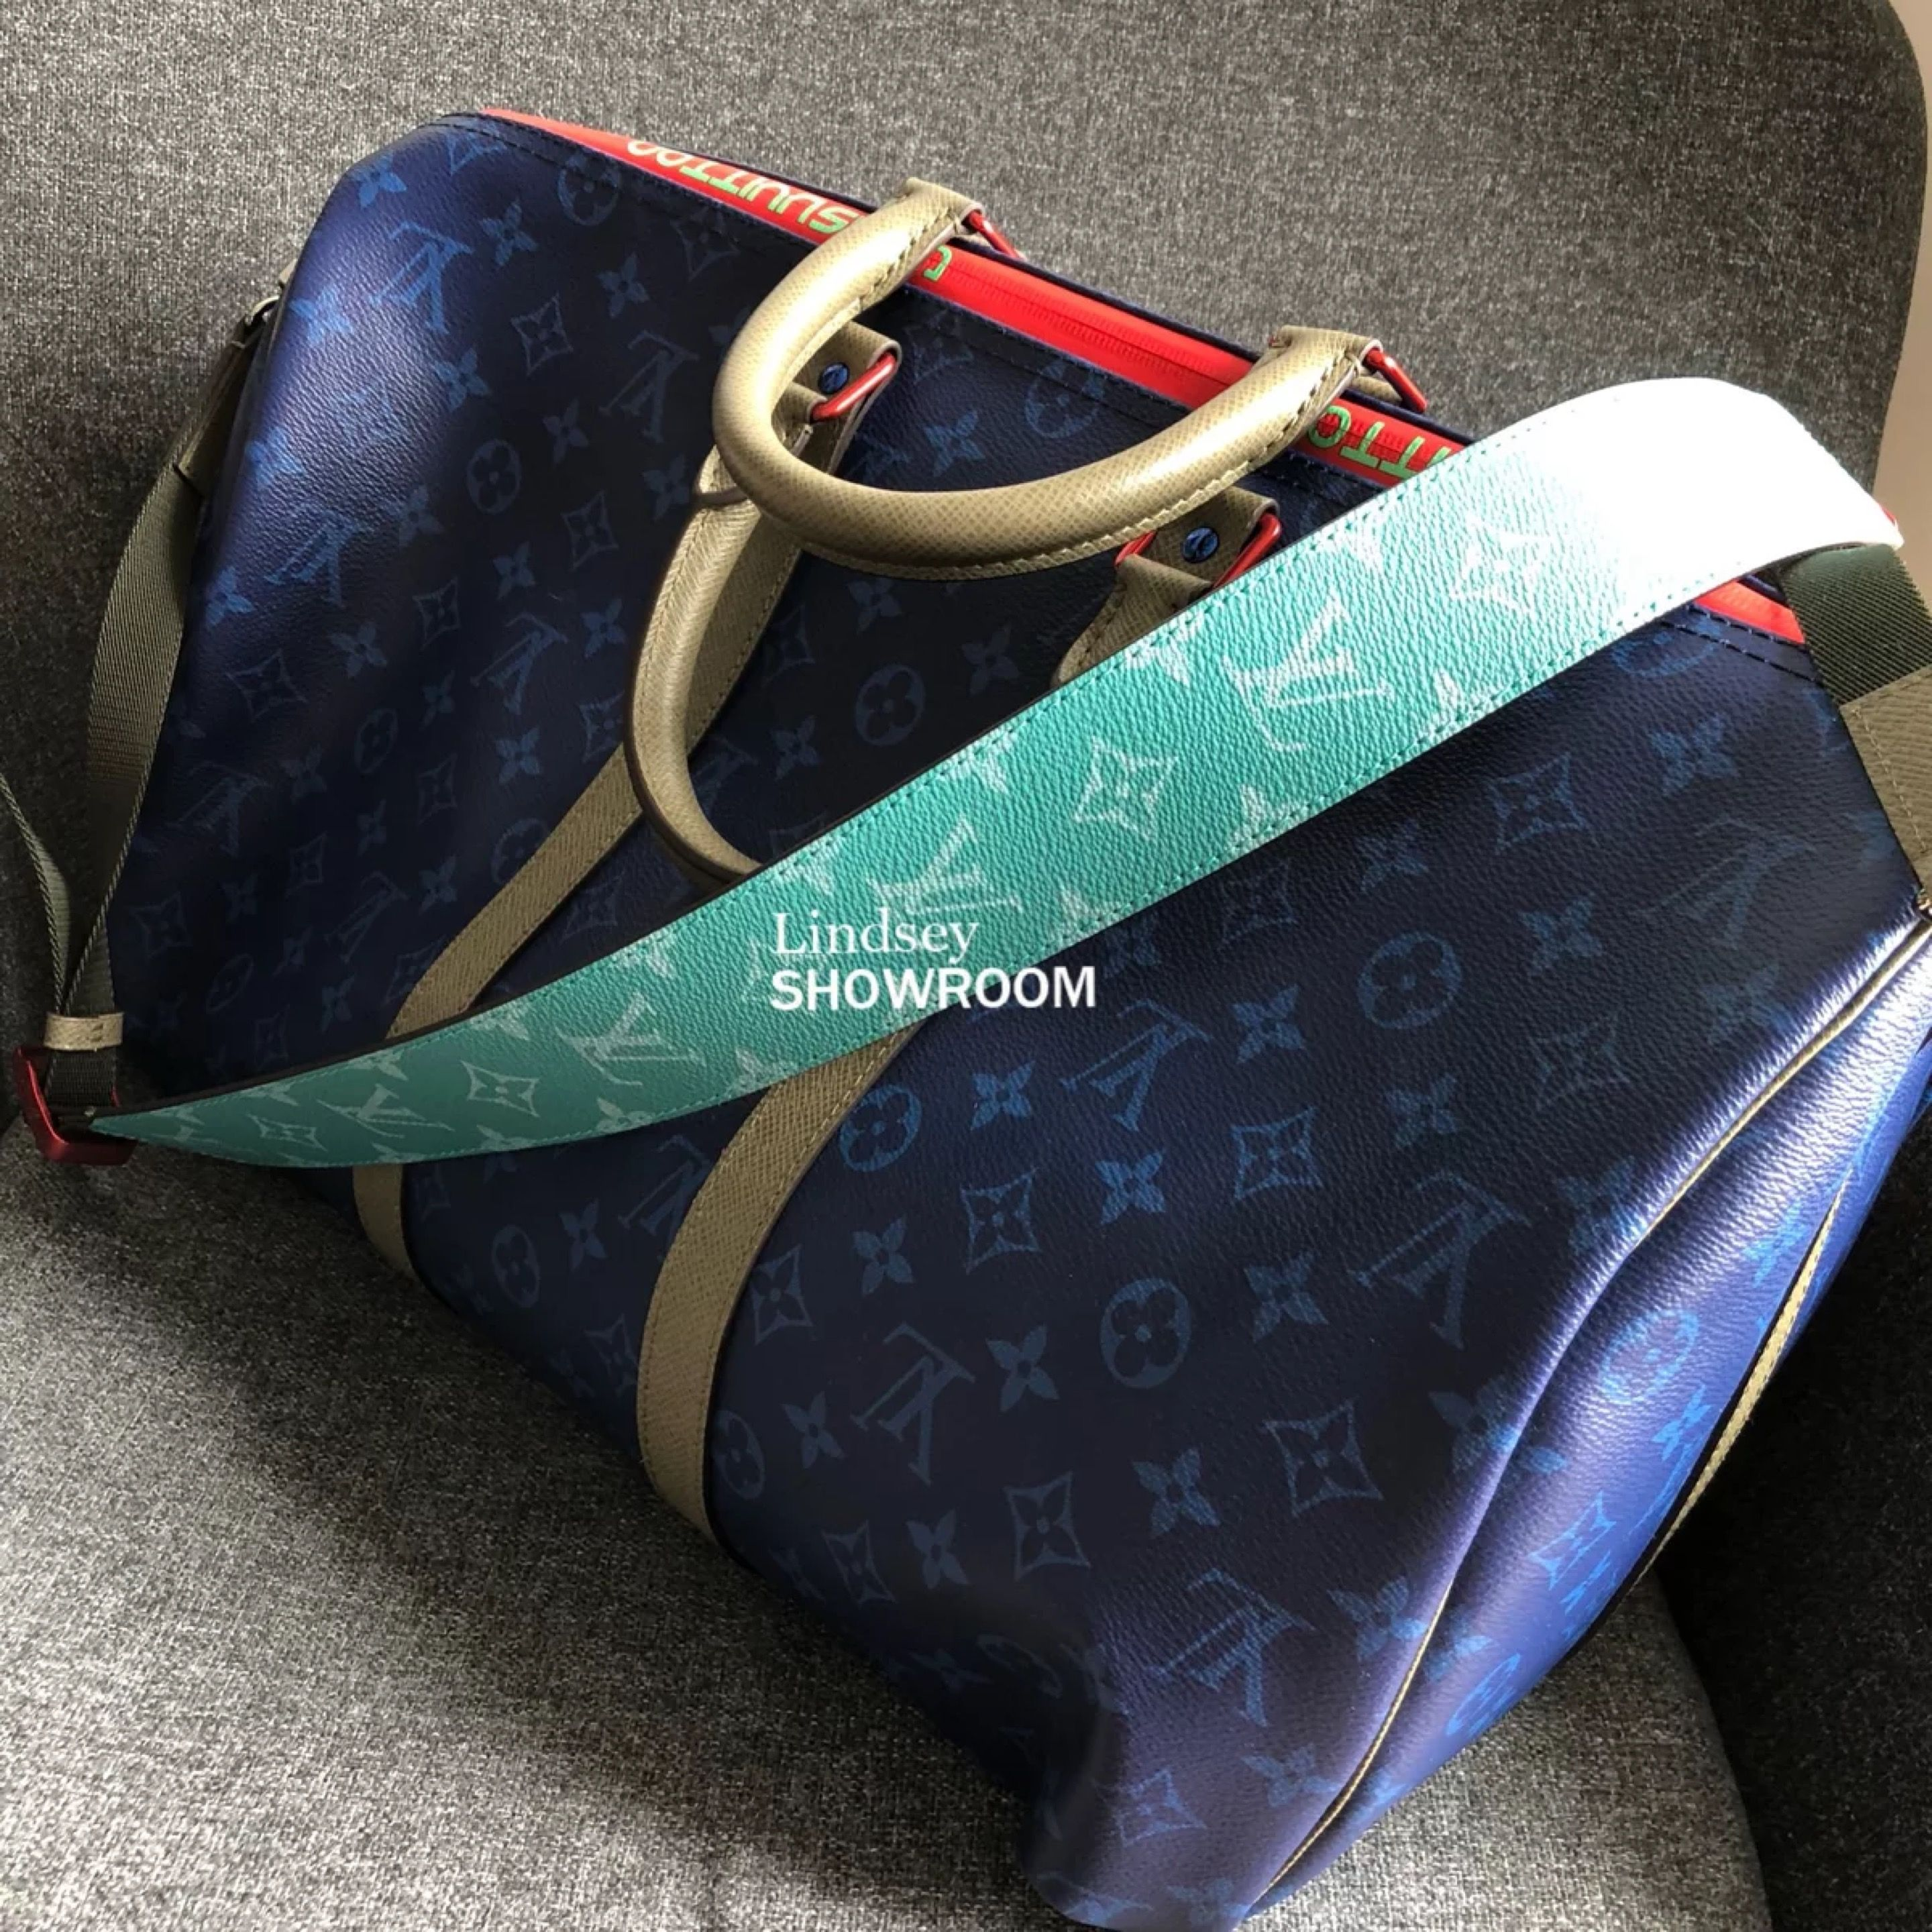 dc9ab7f5a Louis Vuitton Pacific Blue Monogram Keepall Bandouliere 45 Bag M43855 # keepall 45 #lv keepall #louis vuitton keepall 45